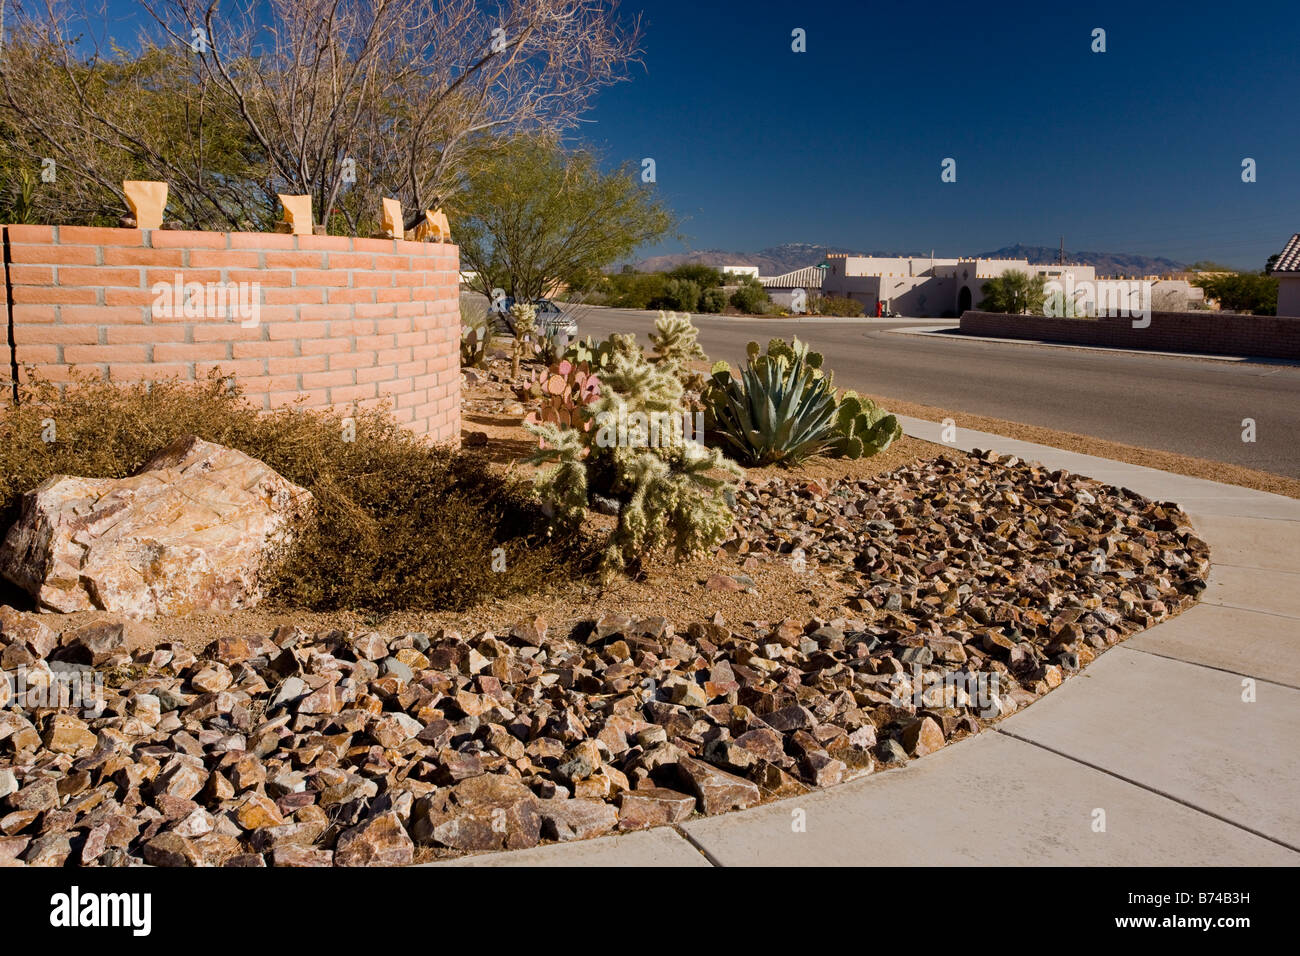 Desert gardening using drought resistant species in a low rainfall